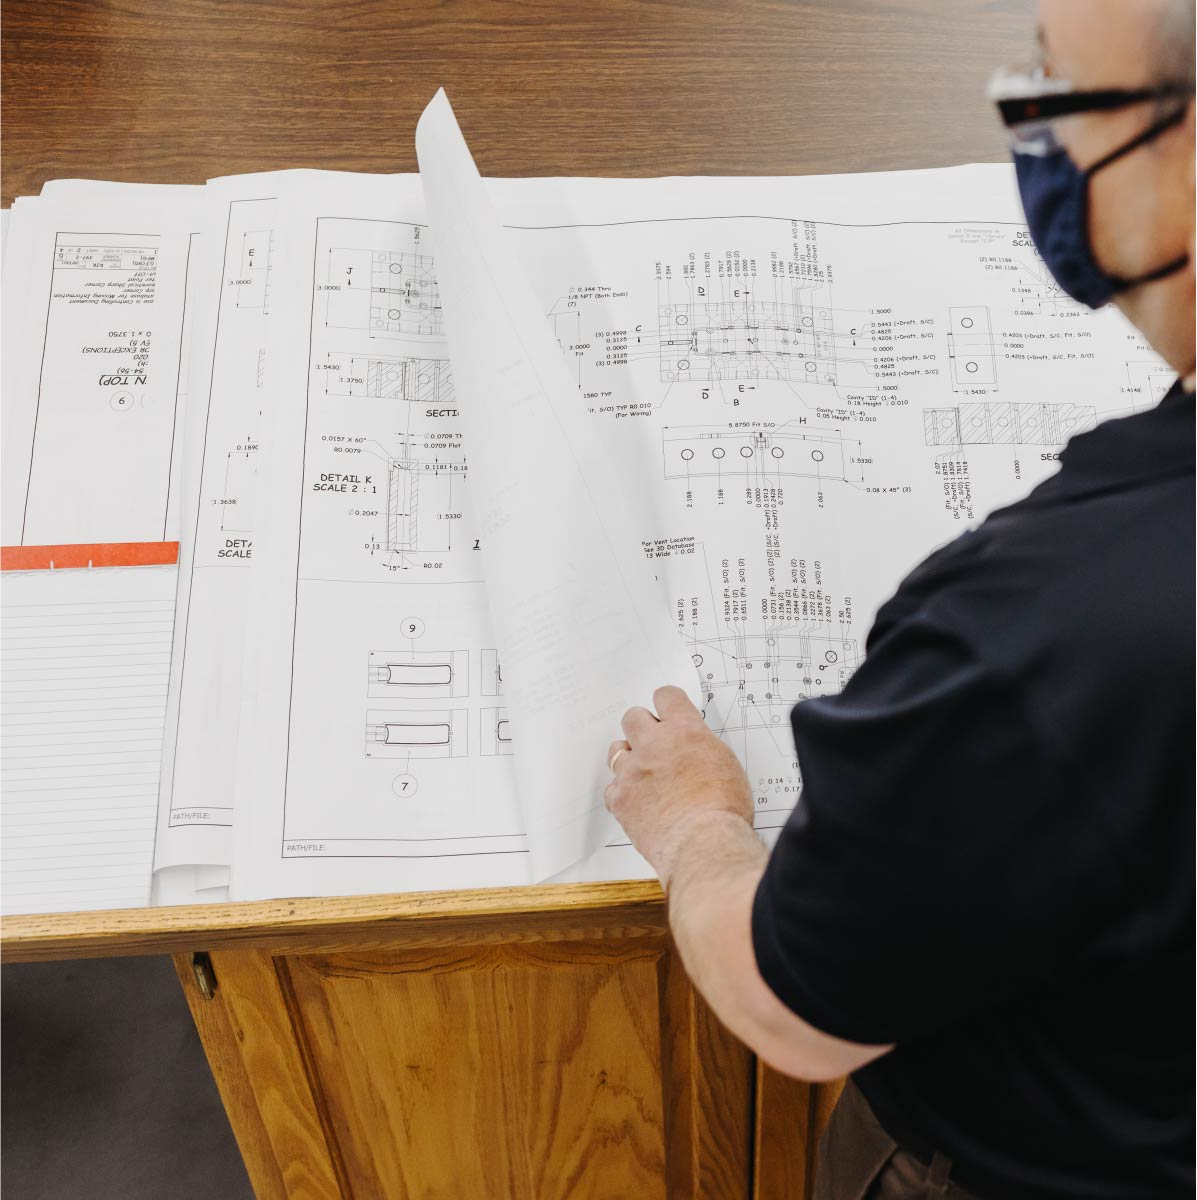 A man looks at pages of manufacturing blueprints